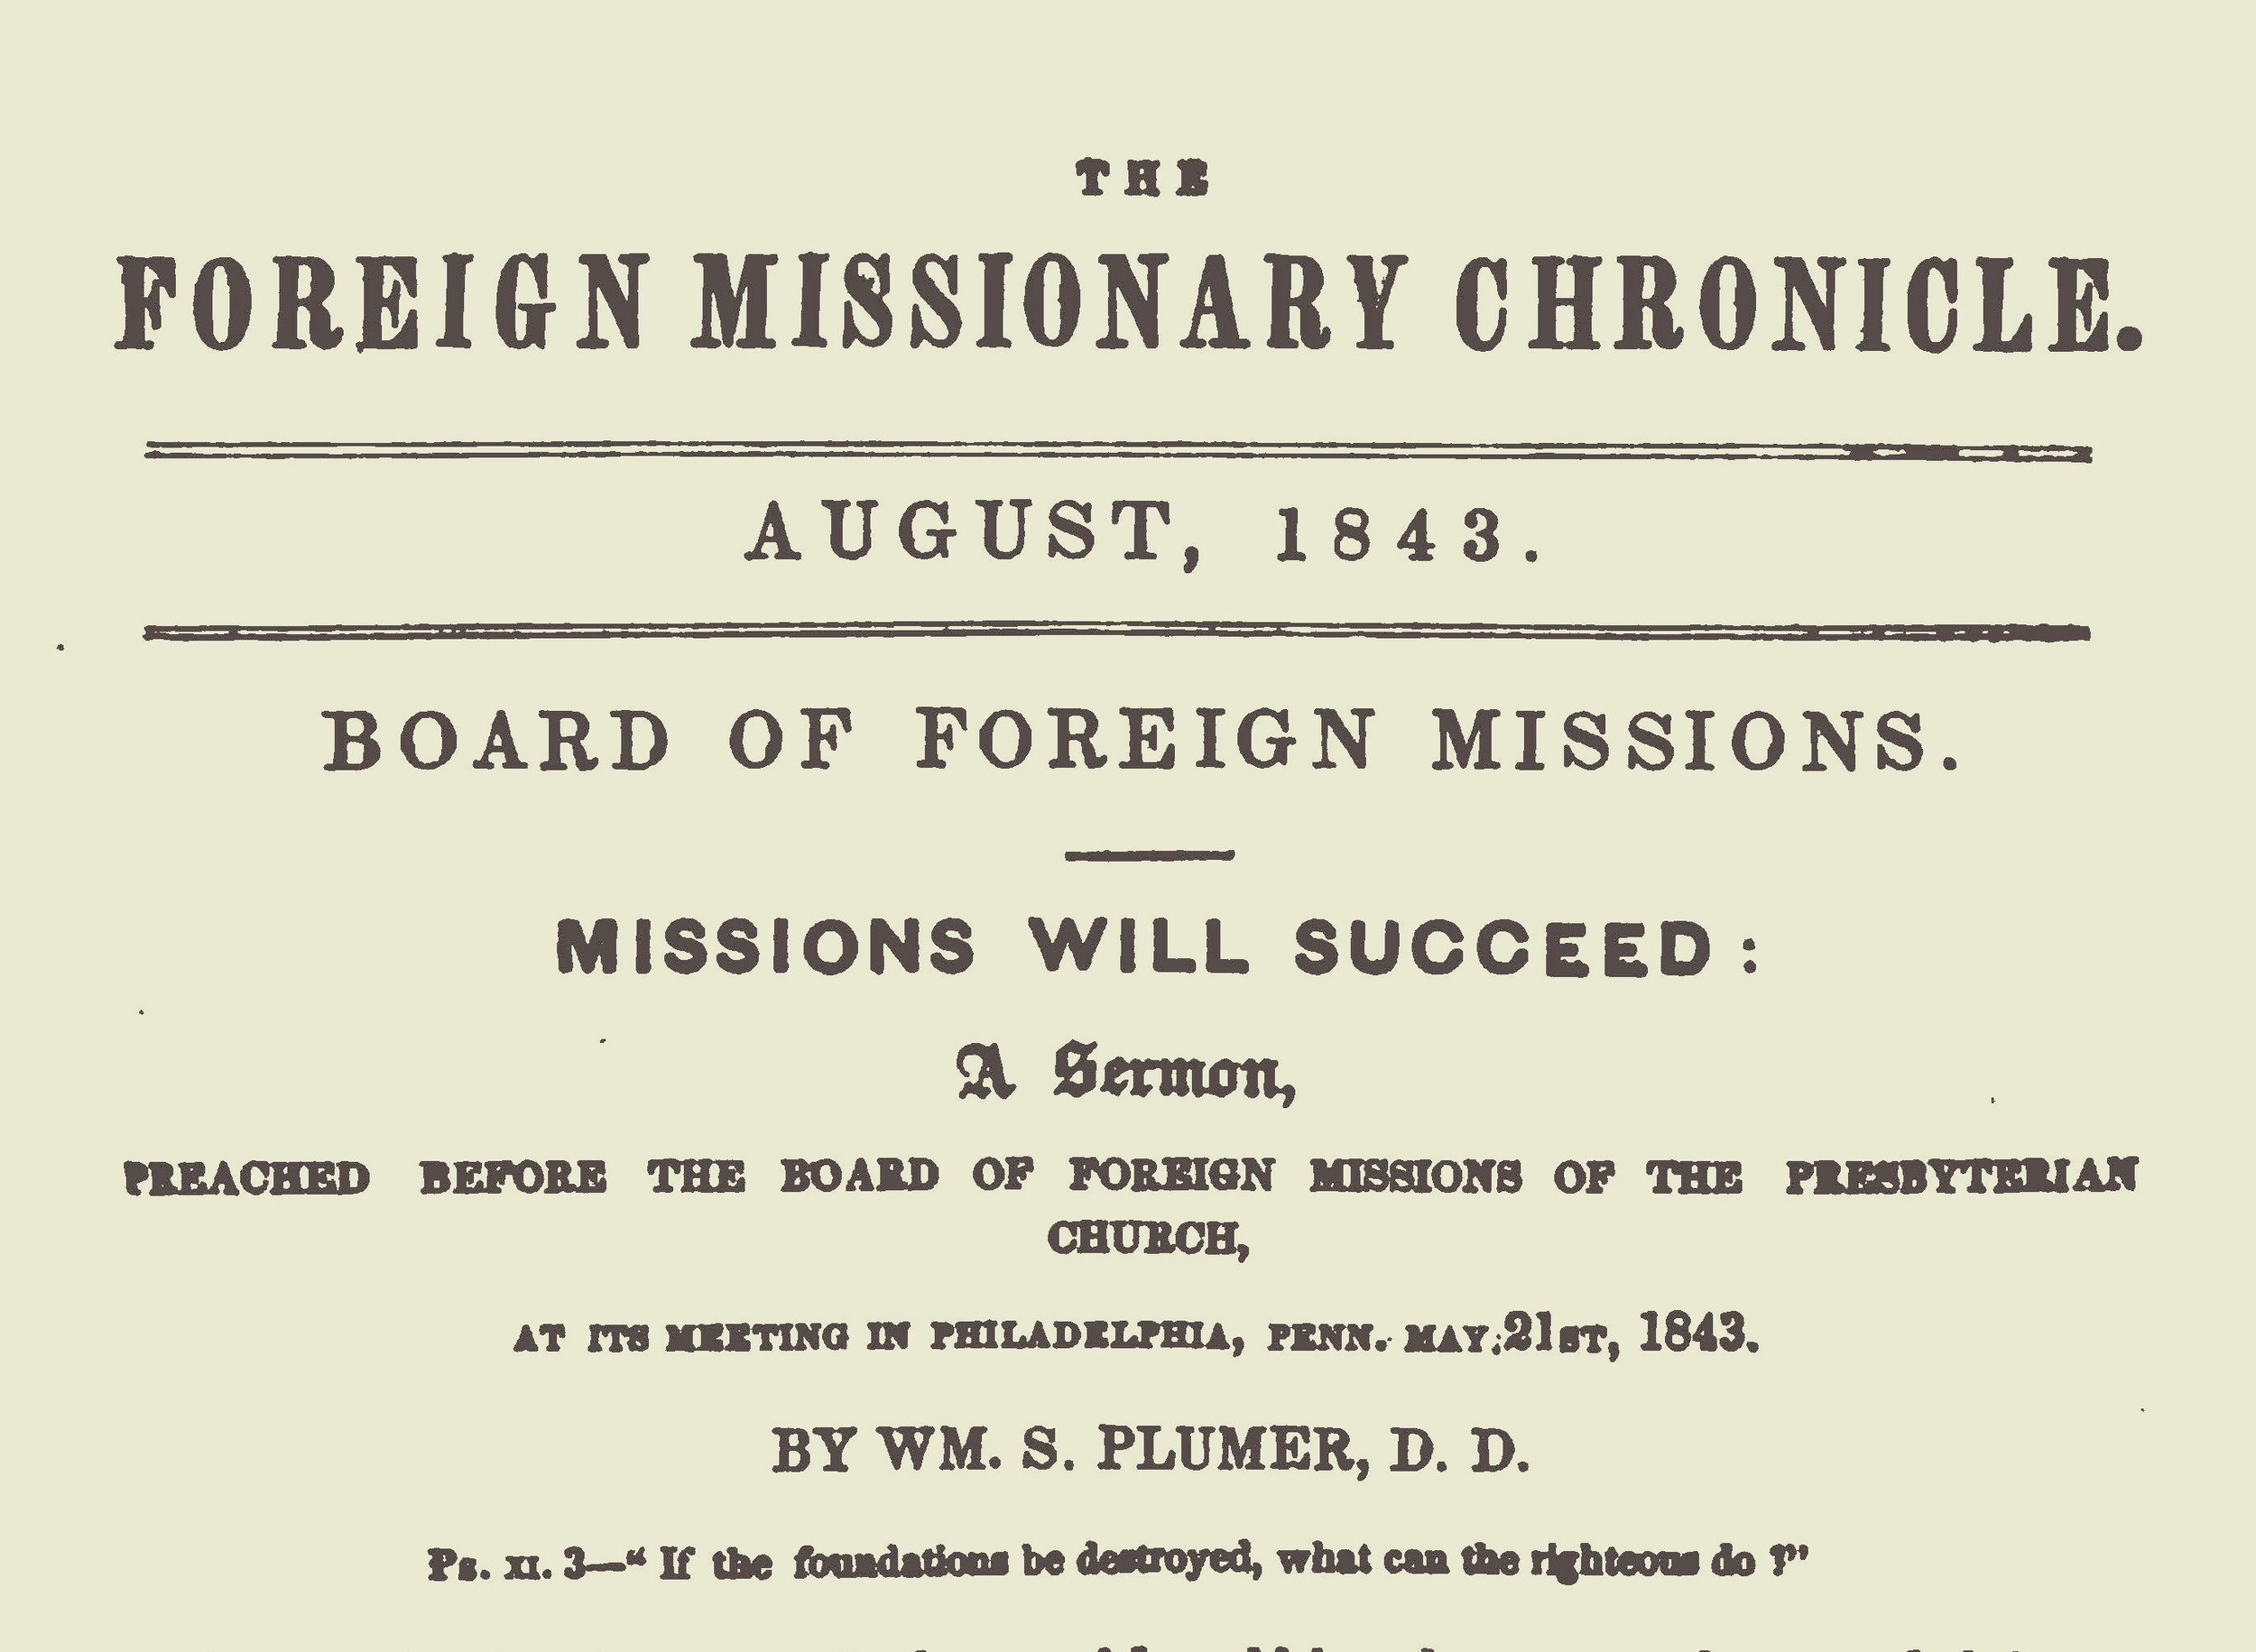 Plumer, William Swan Missions-will-succeed-in-the-missionary-chronicle-225ff Title Page.jpg